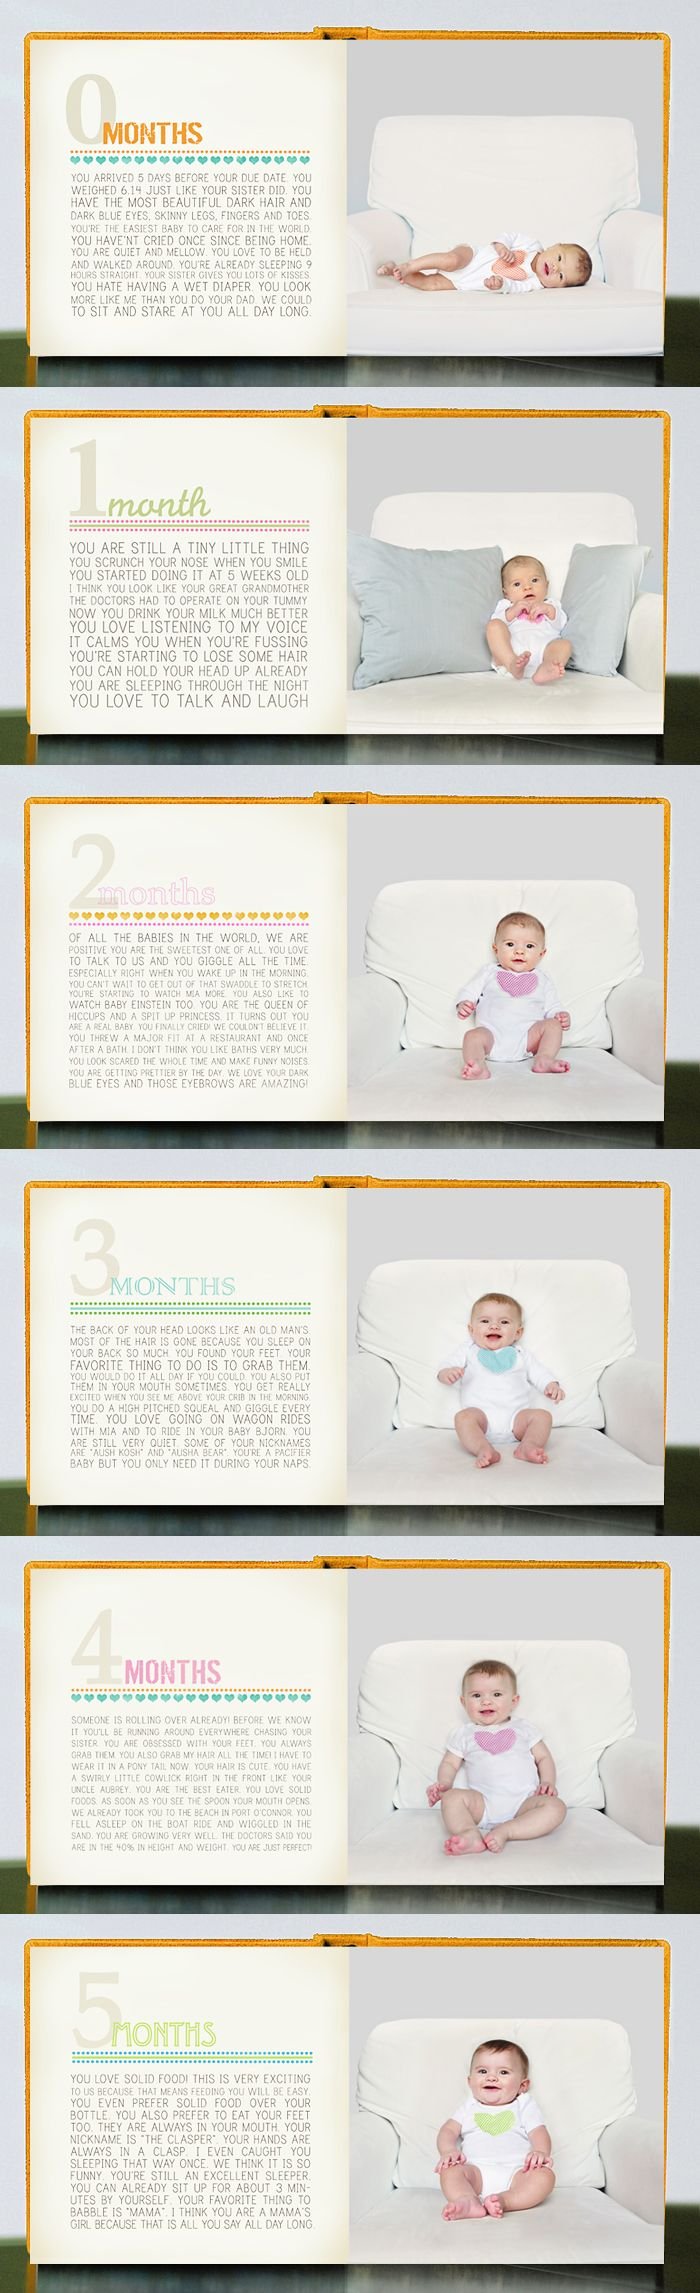 baby memory book -- use a photo album and put a pic of the child on one side and write a few paragraphs about what they were like at that age, accomplishments, etc.